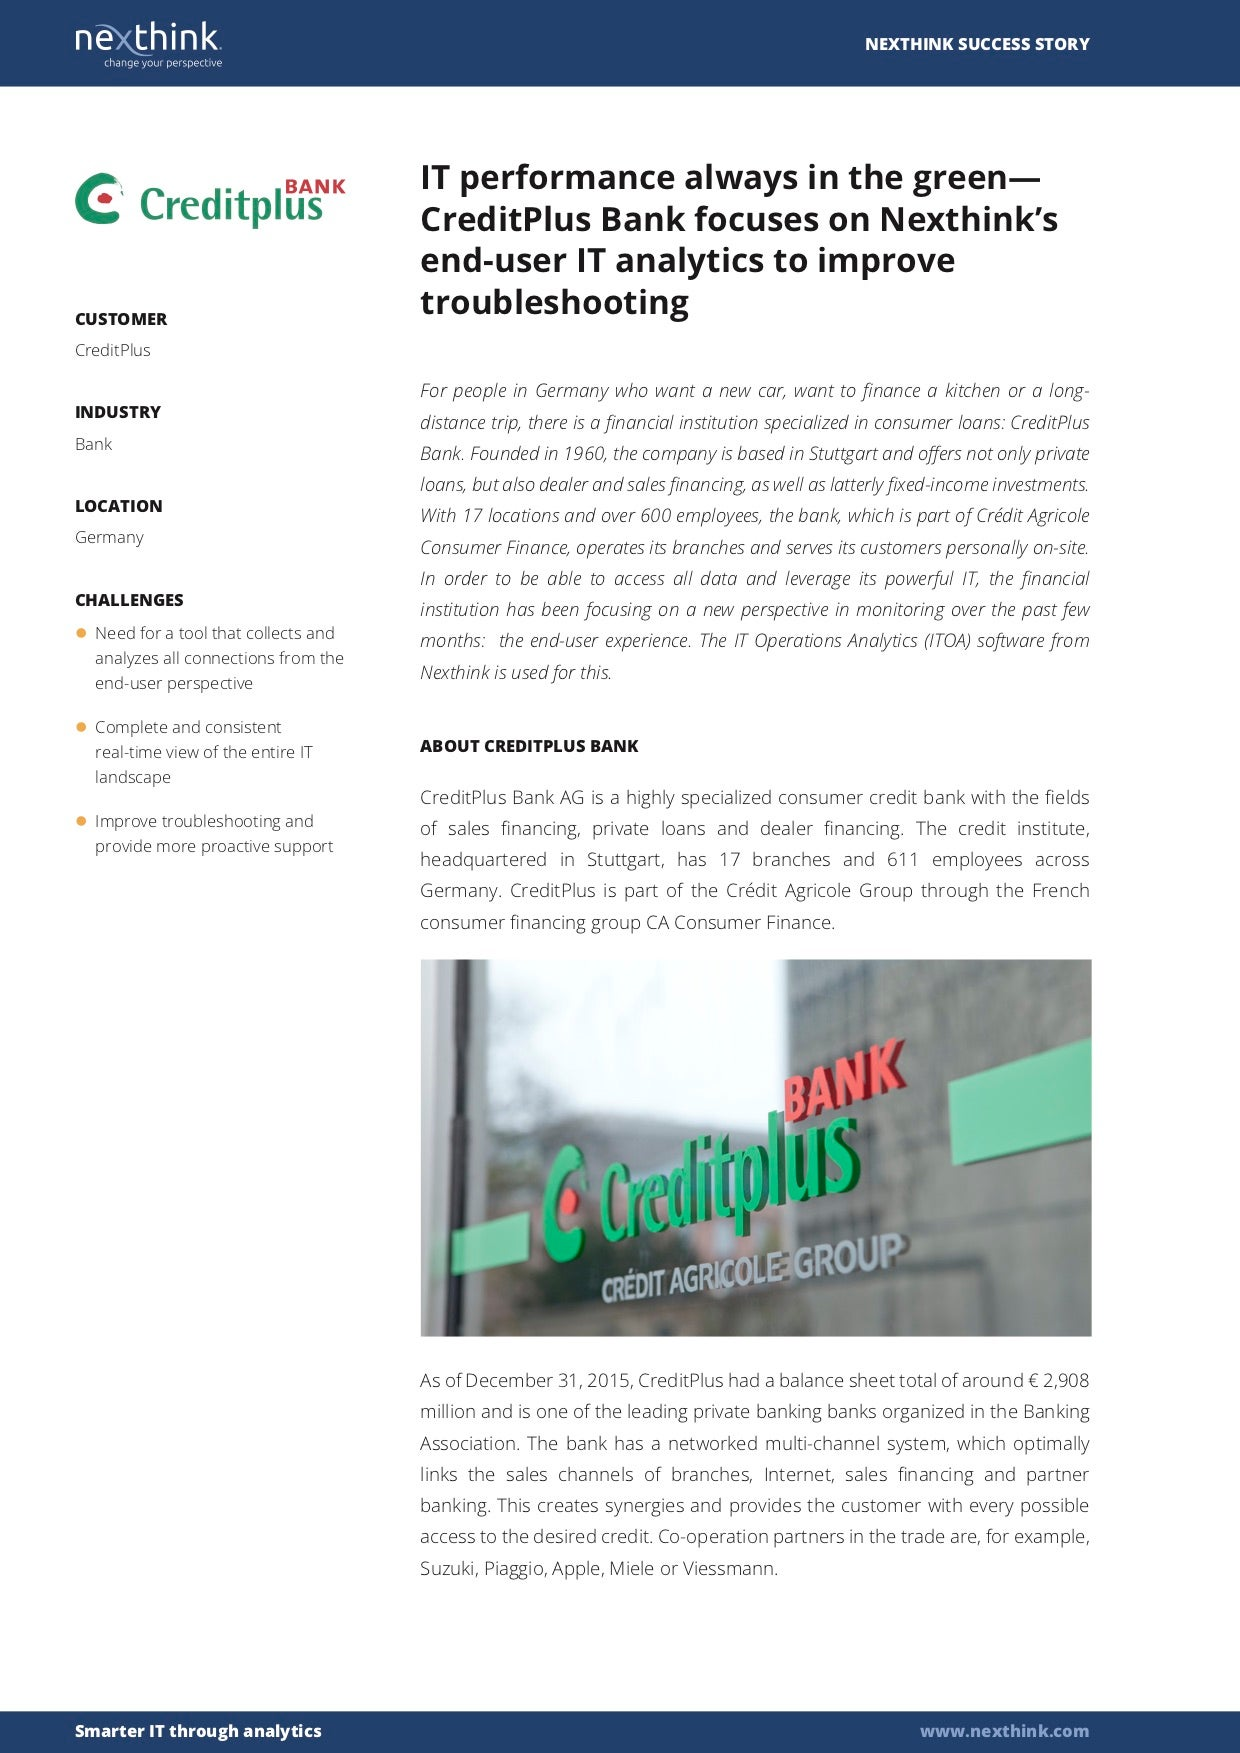 CreditPlus Bank focuses on Nexthink's end-user IT analytics to improve troubleshooting